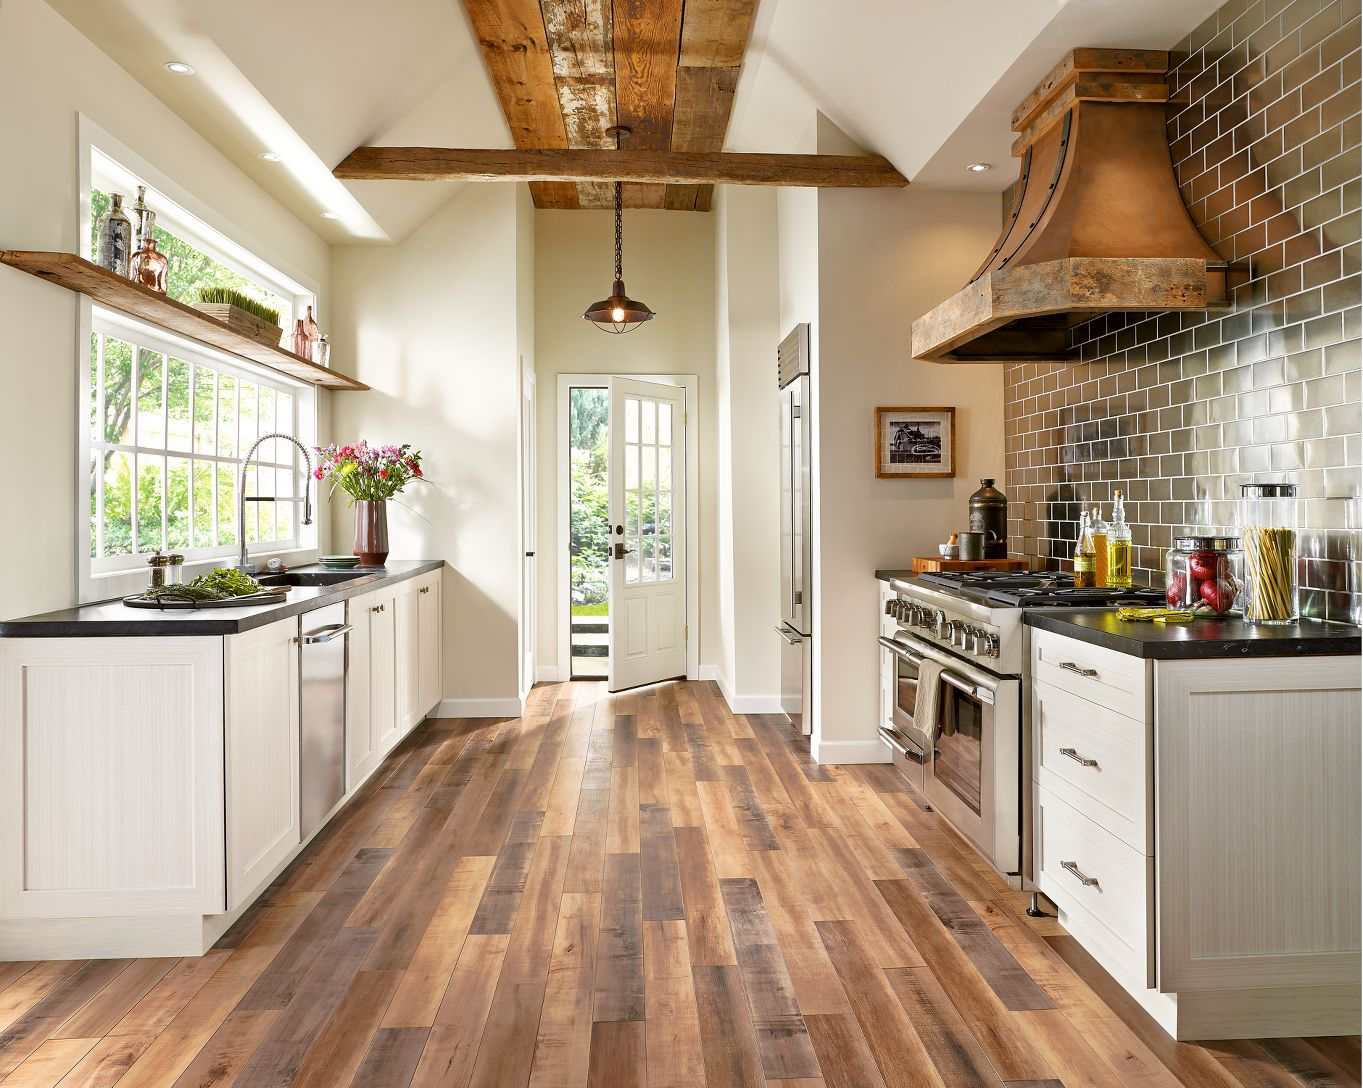 Pictures Of Kitchen Floors Options. Kitchen Design Ideas